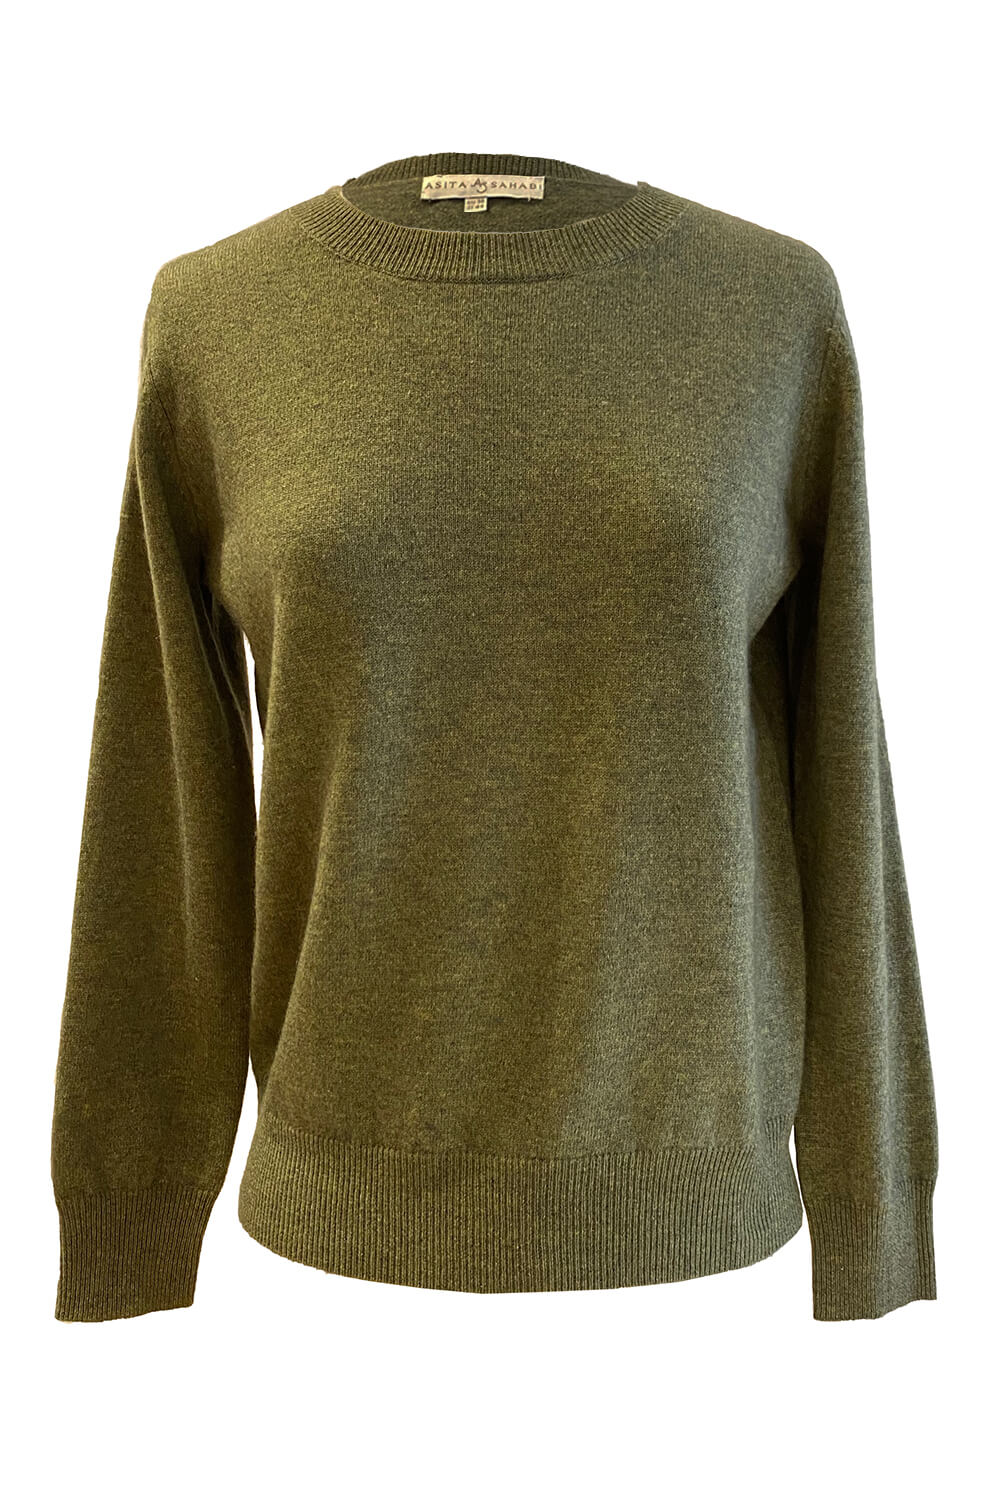 olive green premium quality round neck cashmere sweater BEATE